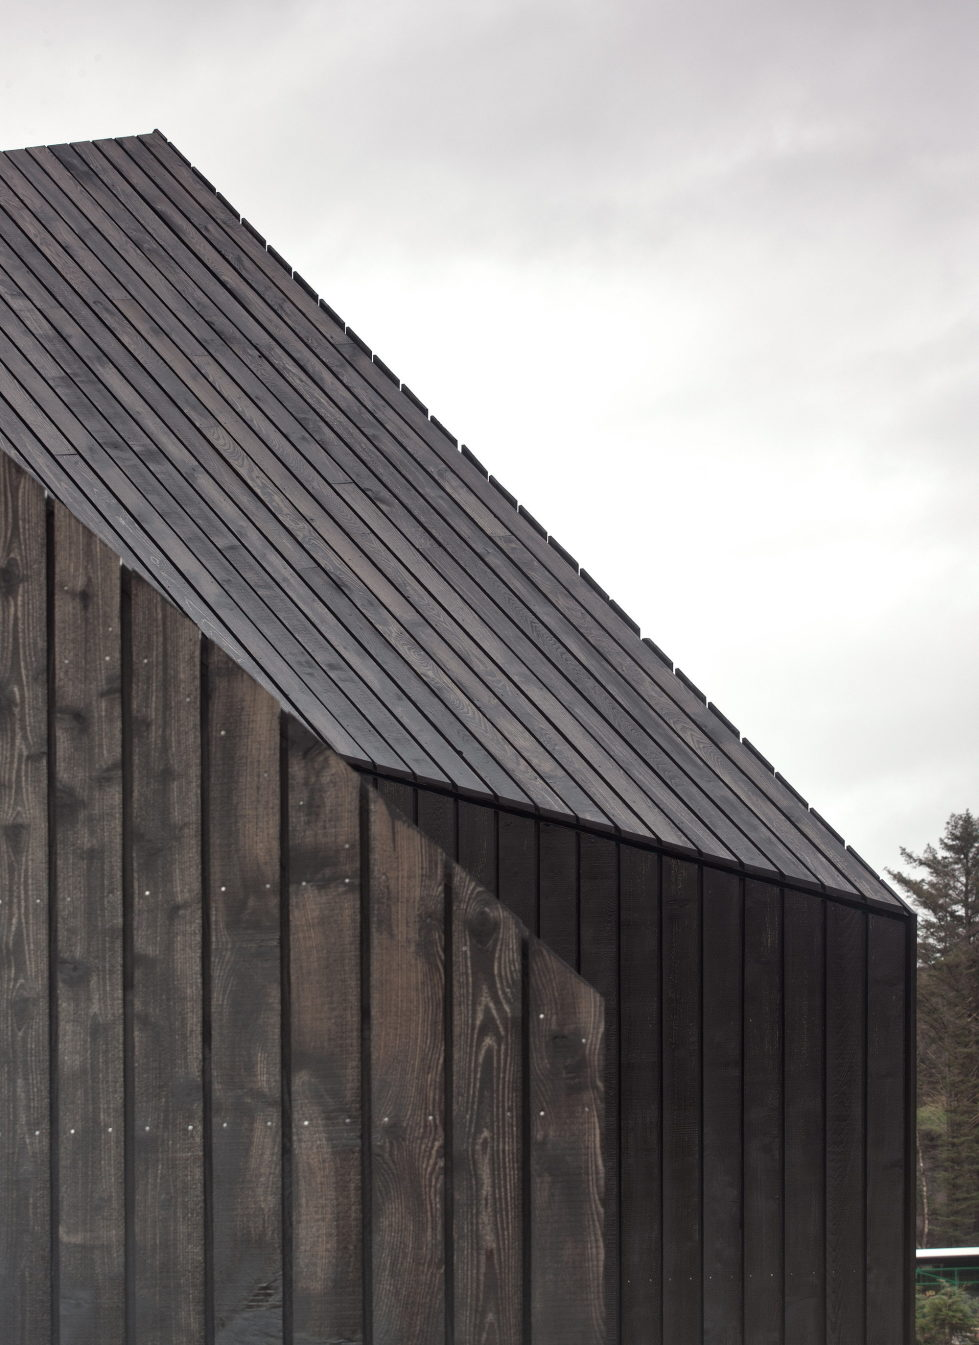 The house in Scotland from the Raw Architecture Workshop studio 12